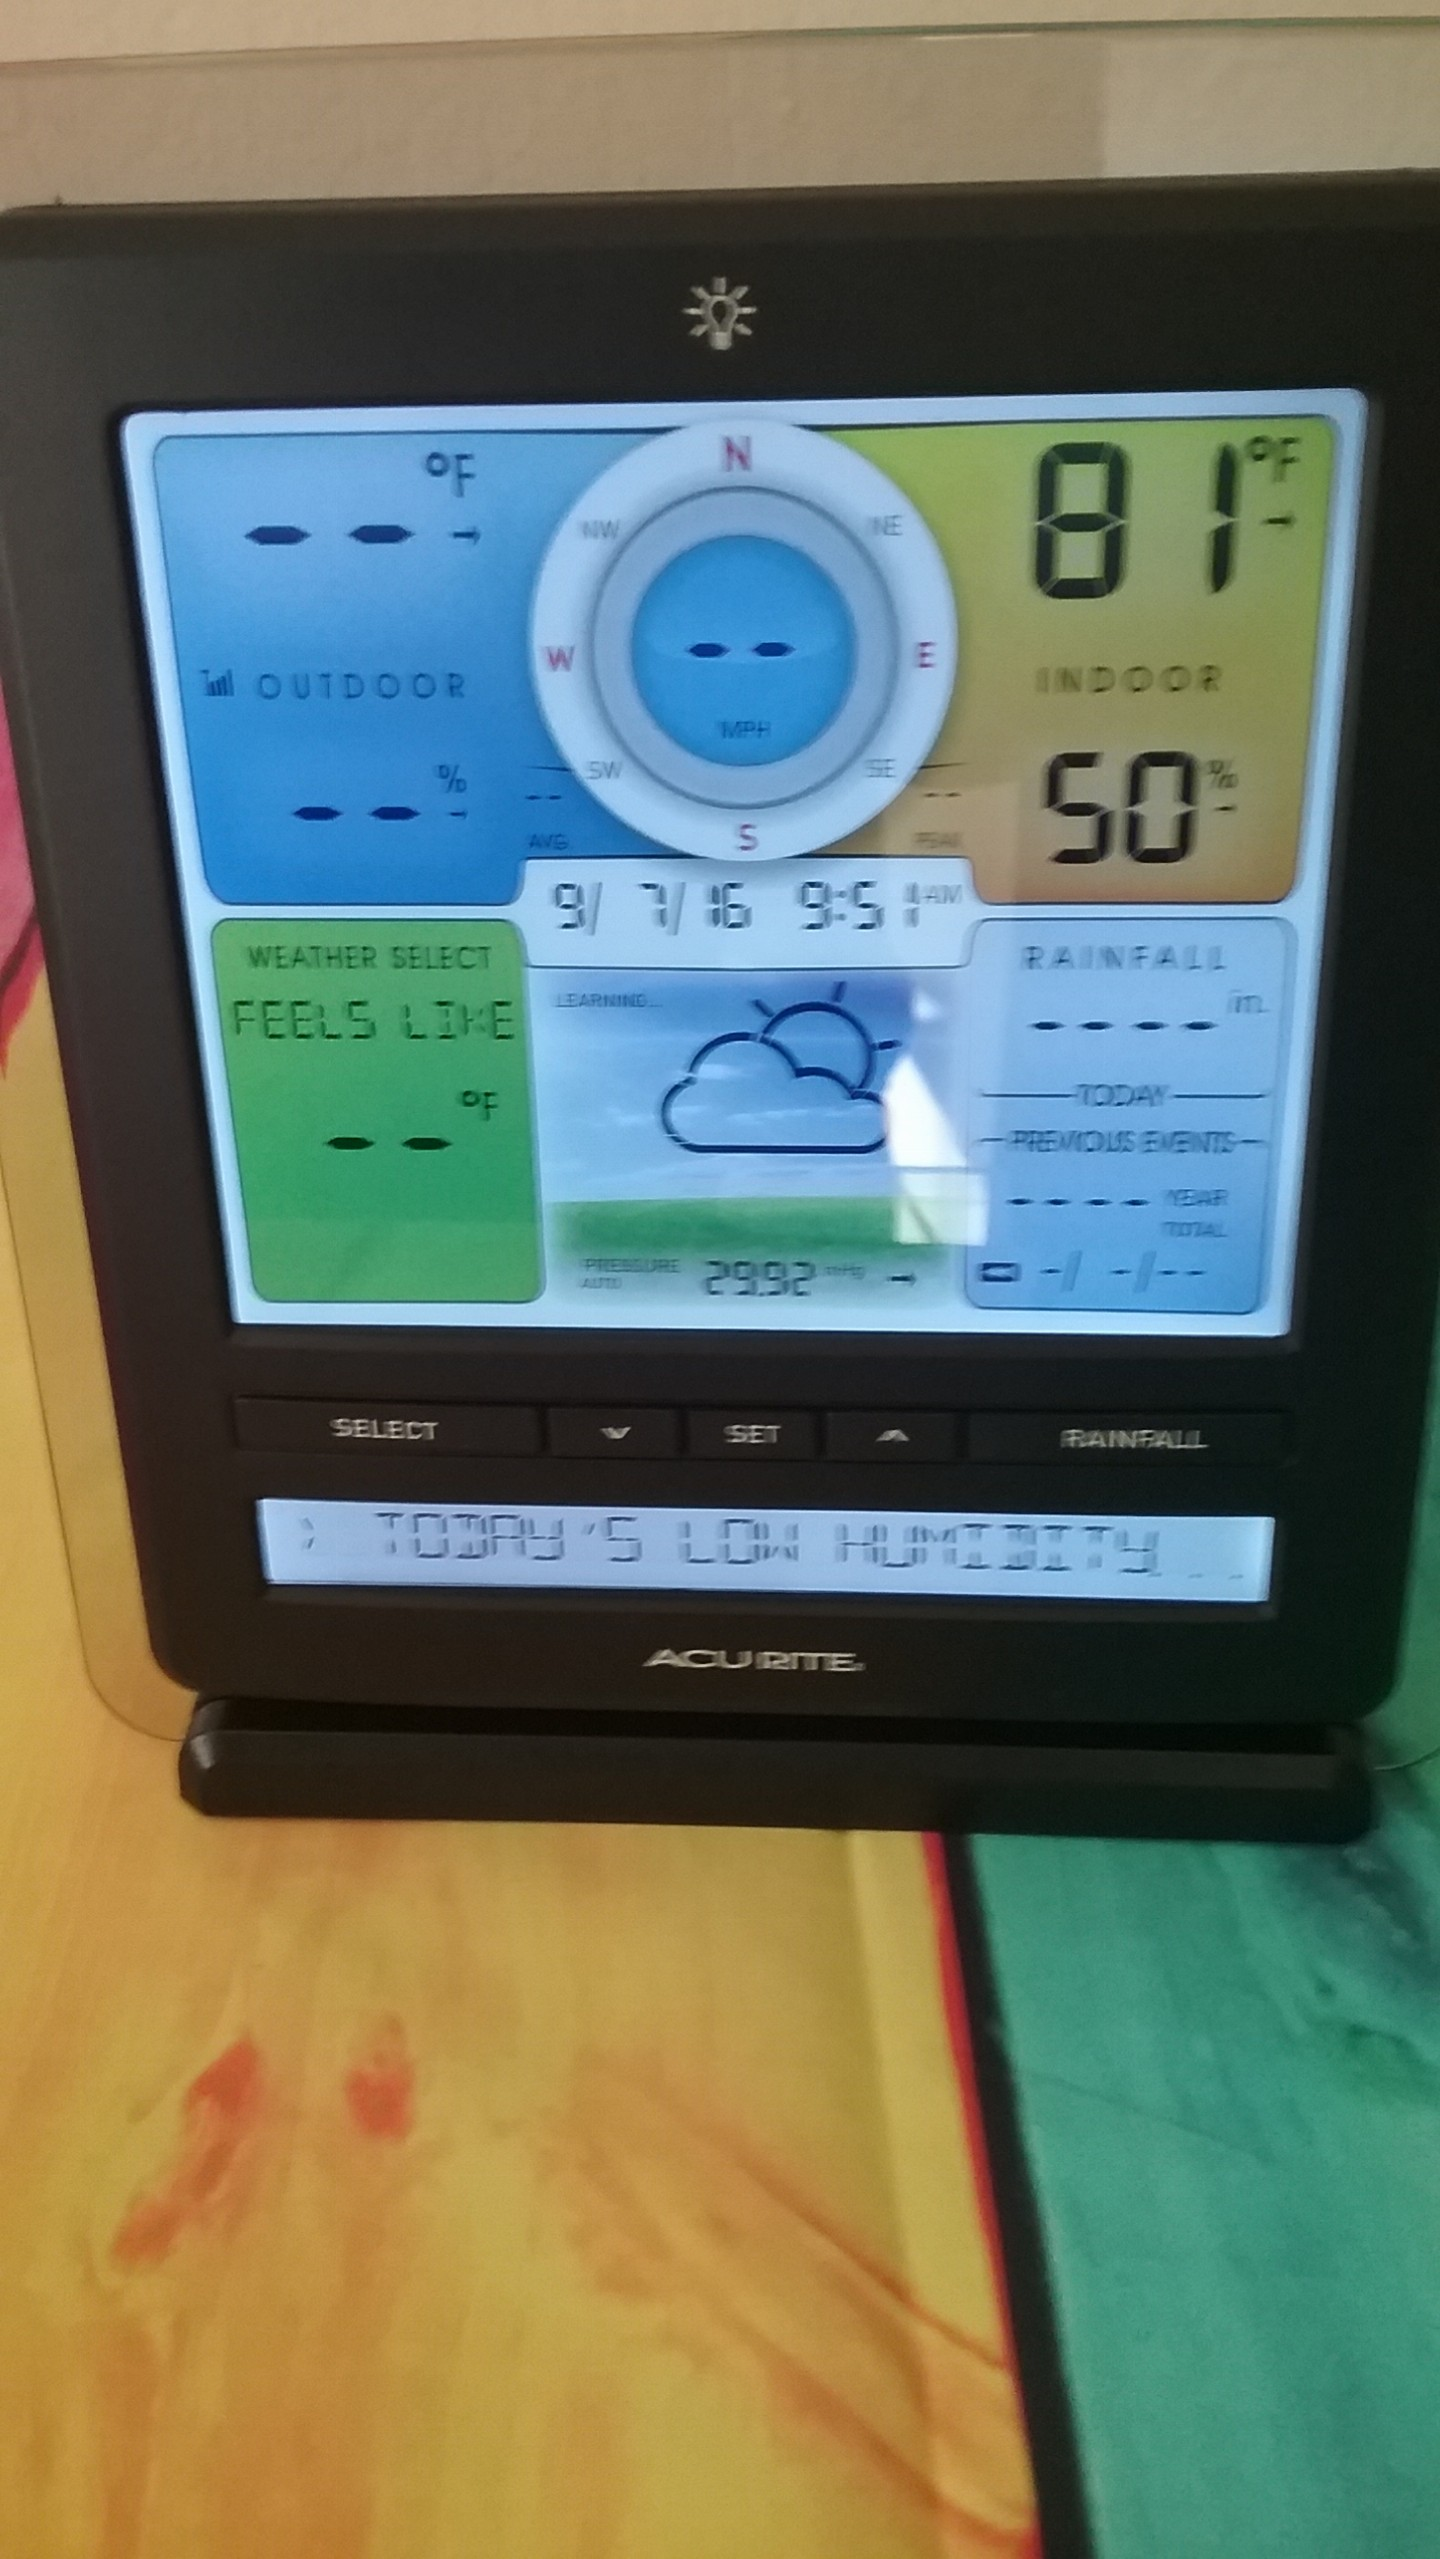 prepare your home with acu rite pro 5 in 1 weather station with